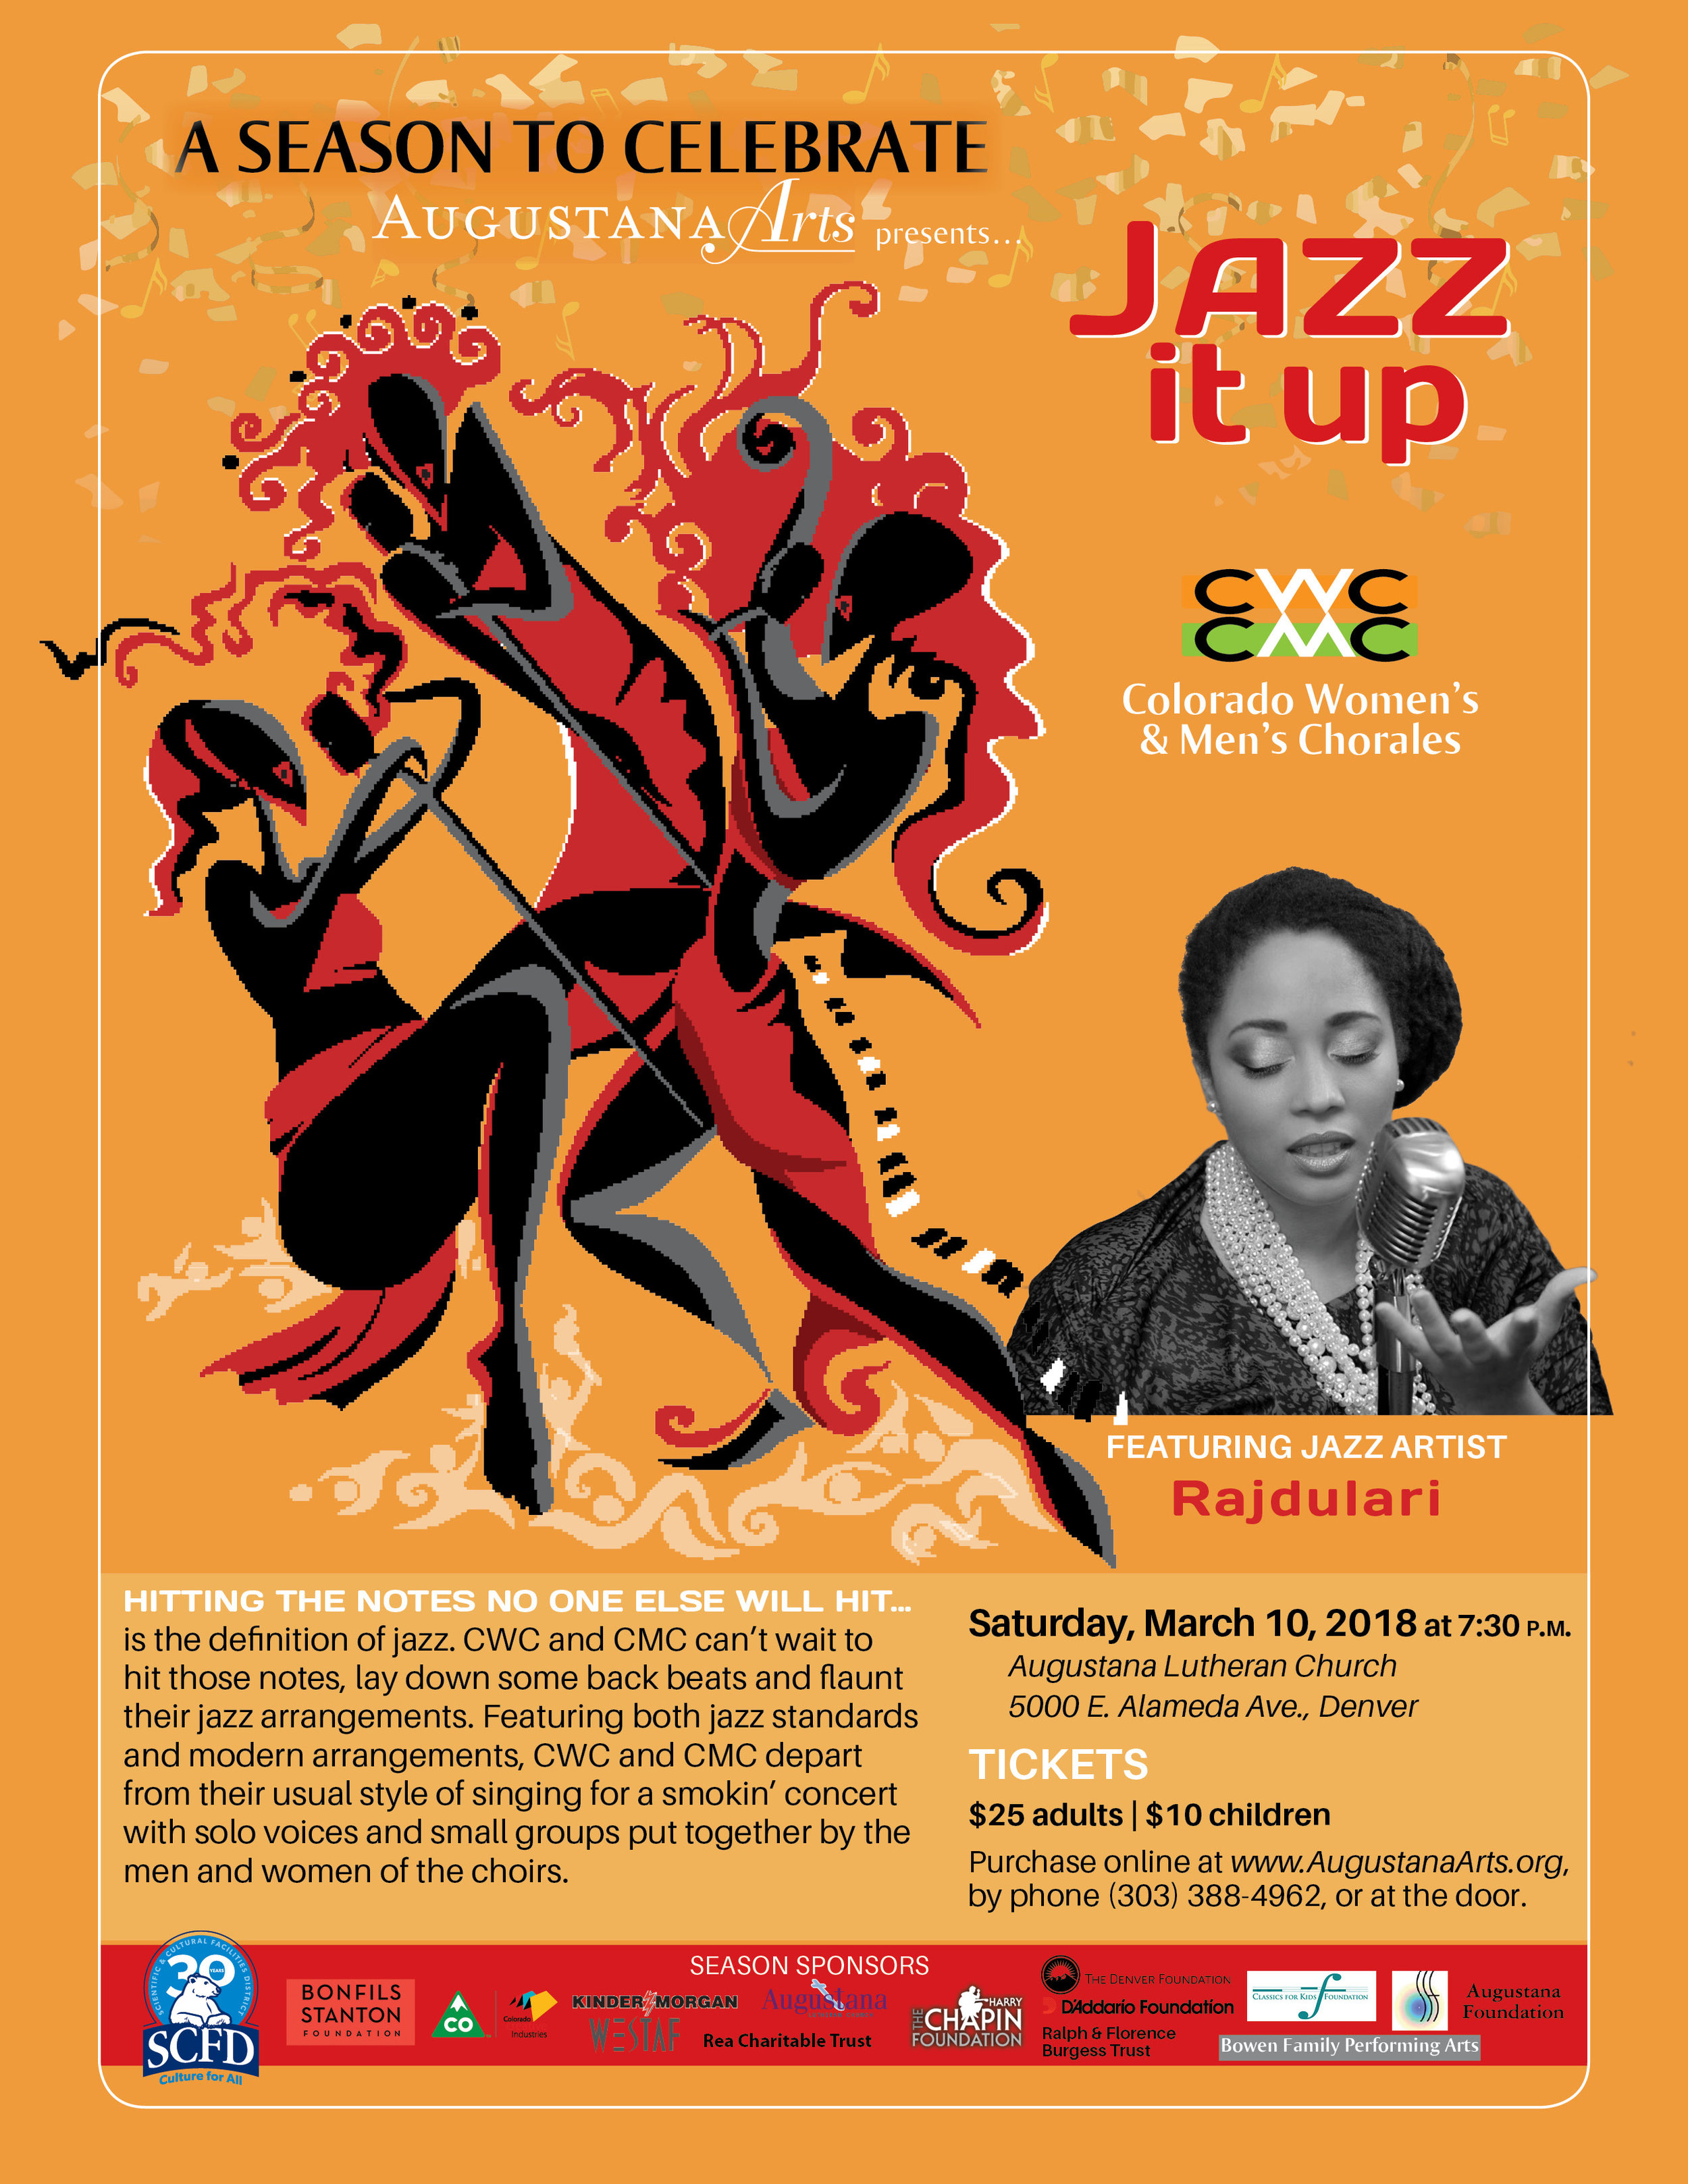 Denver - MARCH 10th- I'll be performing as the featured vocalist at 'Jazz It Up', a musical celebration of Jazz with the Colorado Women's & Men's Chorales at the Augustana Lutheran Church!